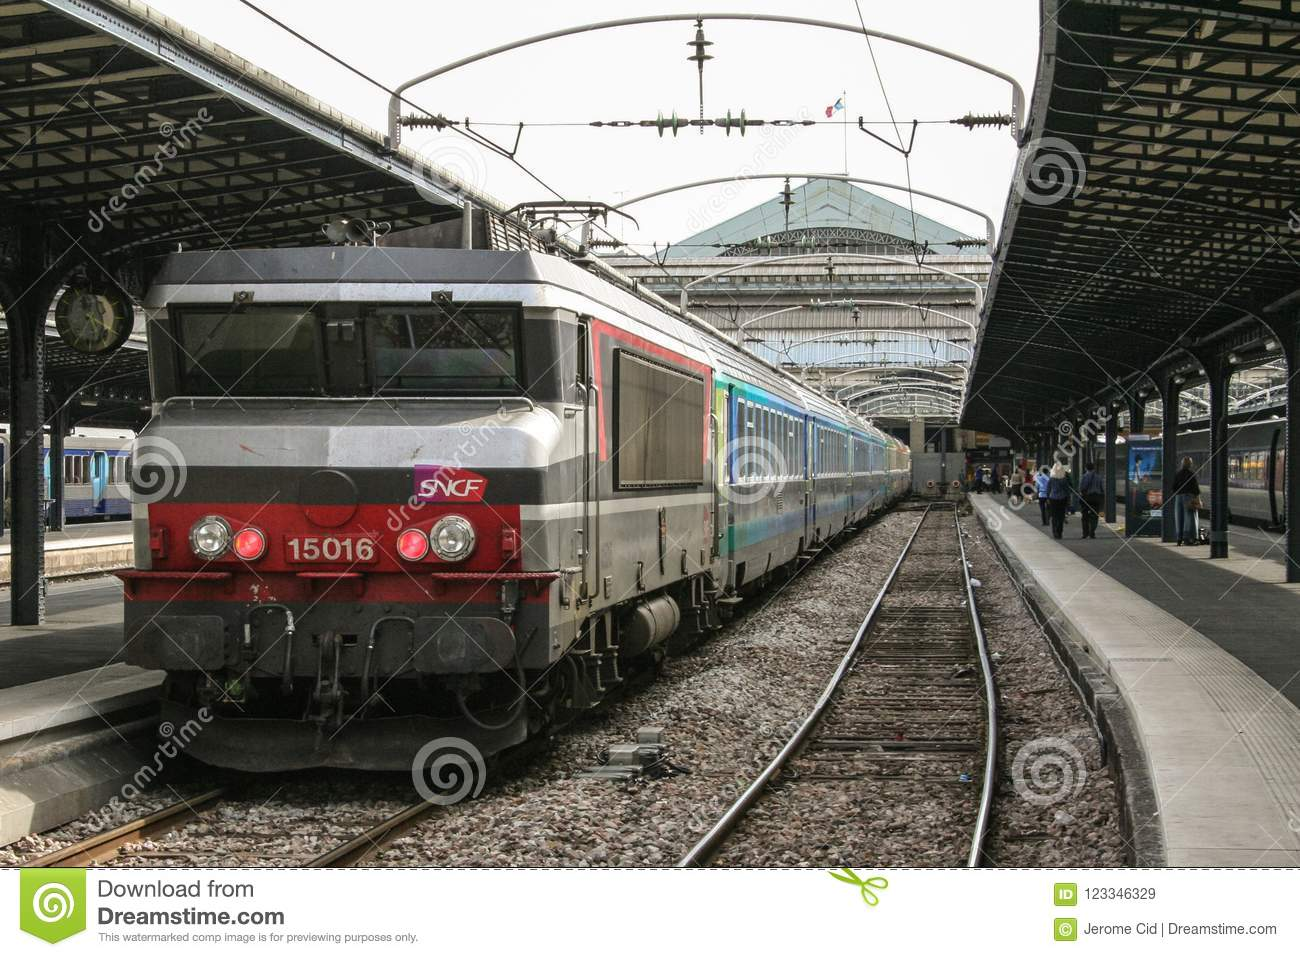 Gare Sncf Passenger Train Corail Intercites Ready For Departure In Paris